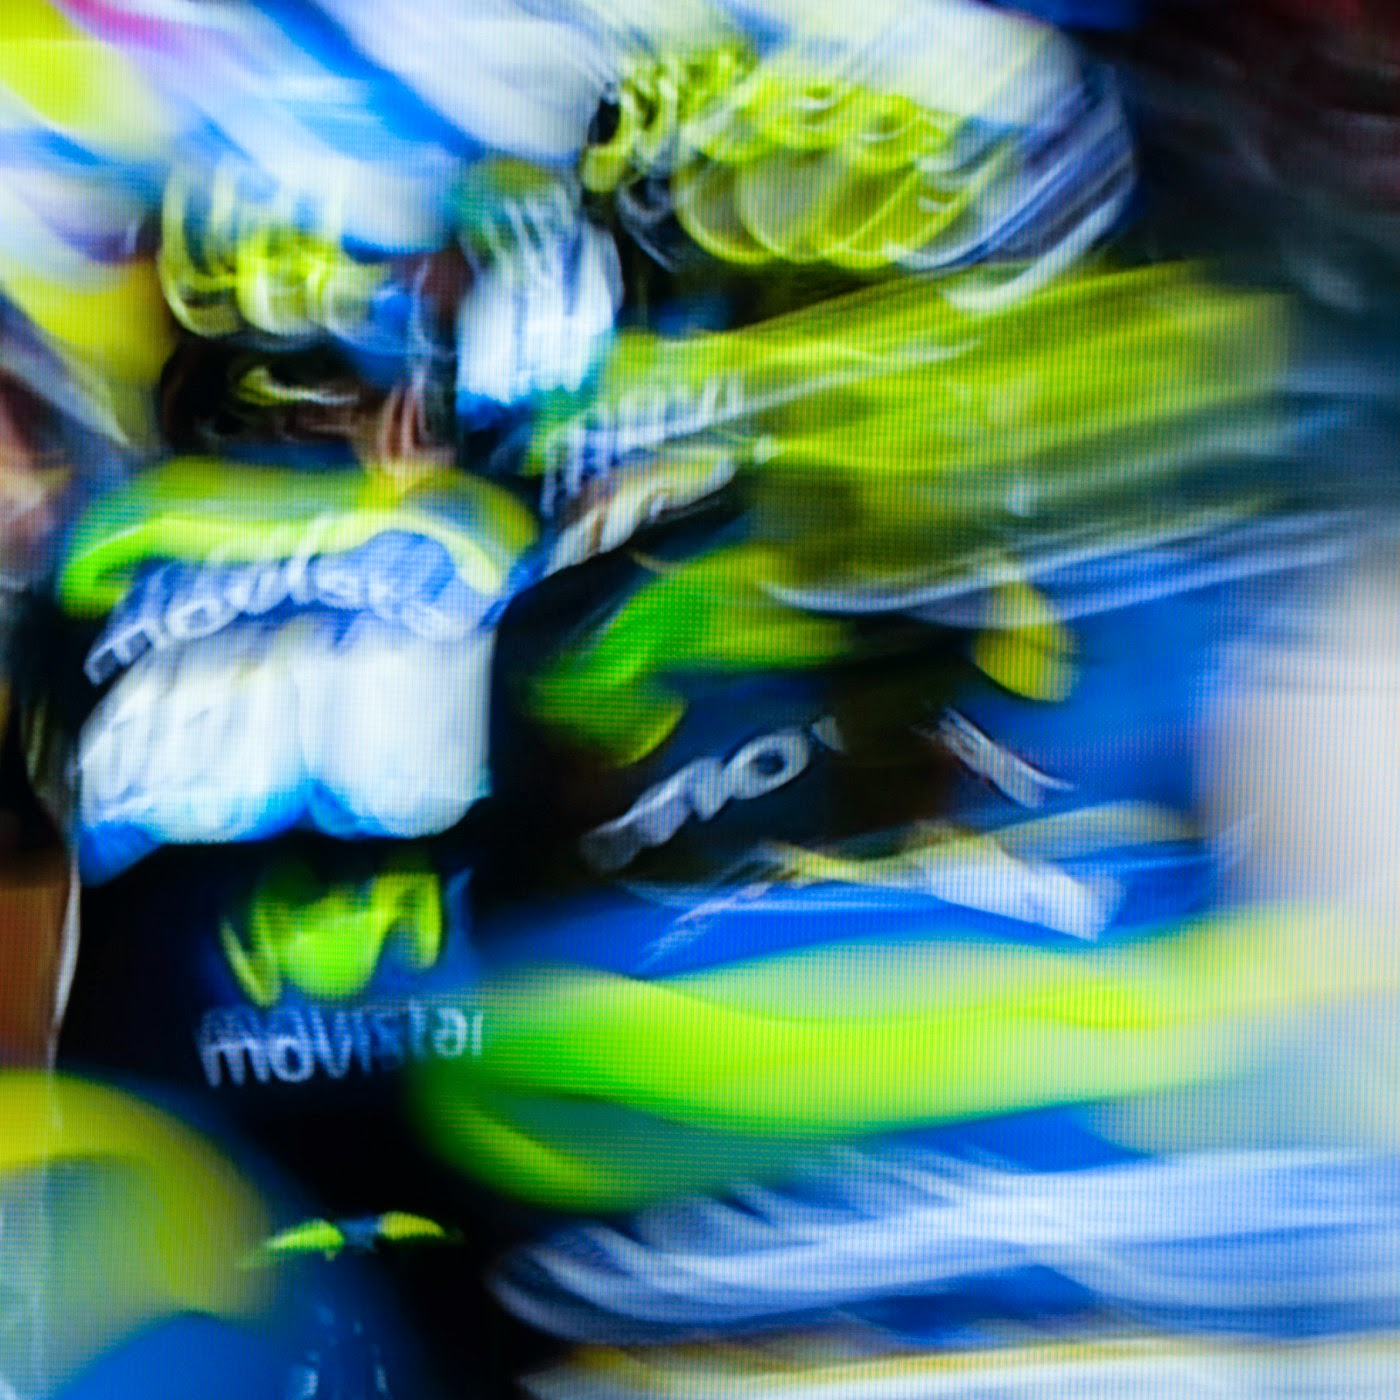 le tour de france, motion blur, blur, abstract, abstraction, tim macauley, photographic art, you won't see this at MoMA, appropriation, found imagery, le tour 2014, tv footage, portrait, timothy Macauley, the light monkey collective, grand cycling tour, team movistar